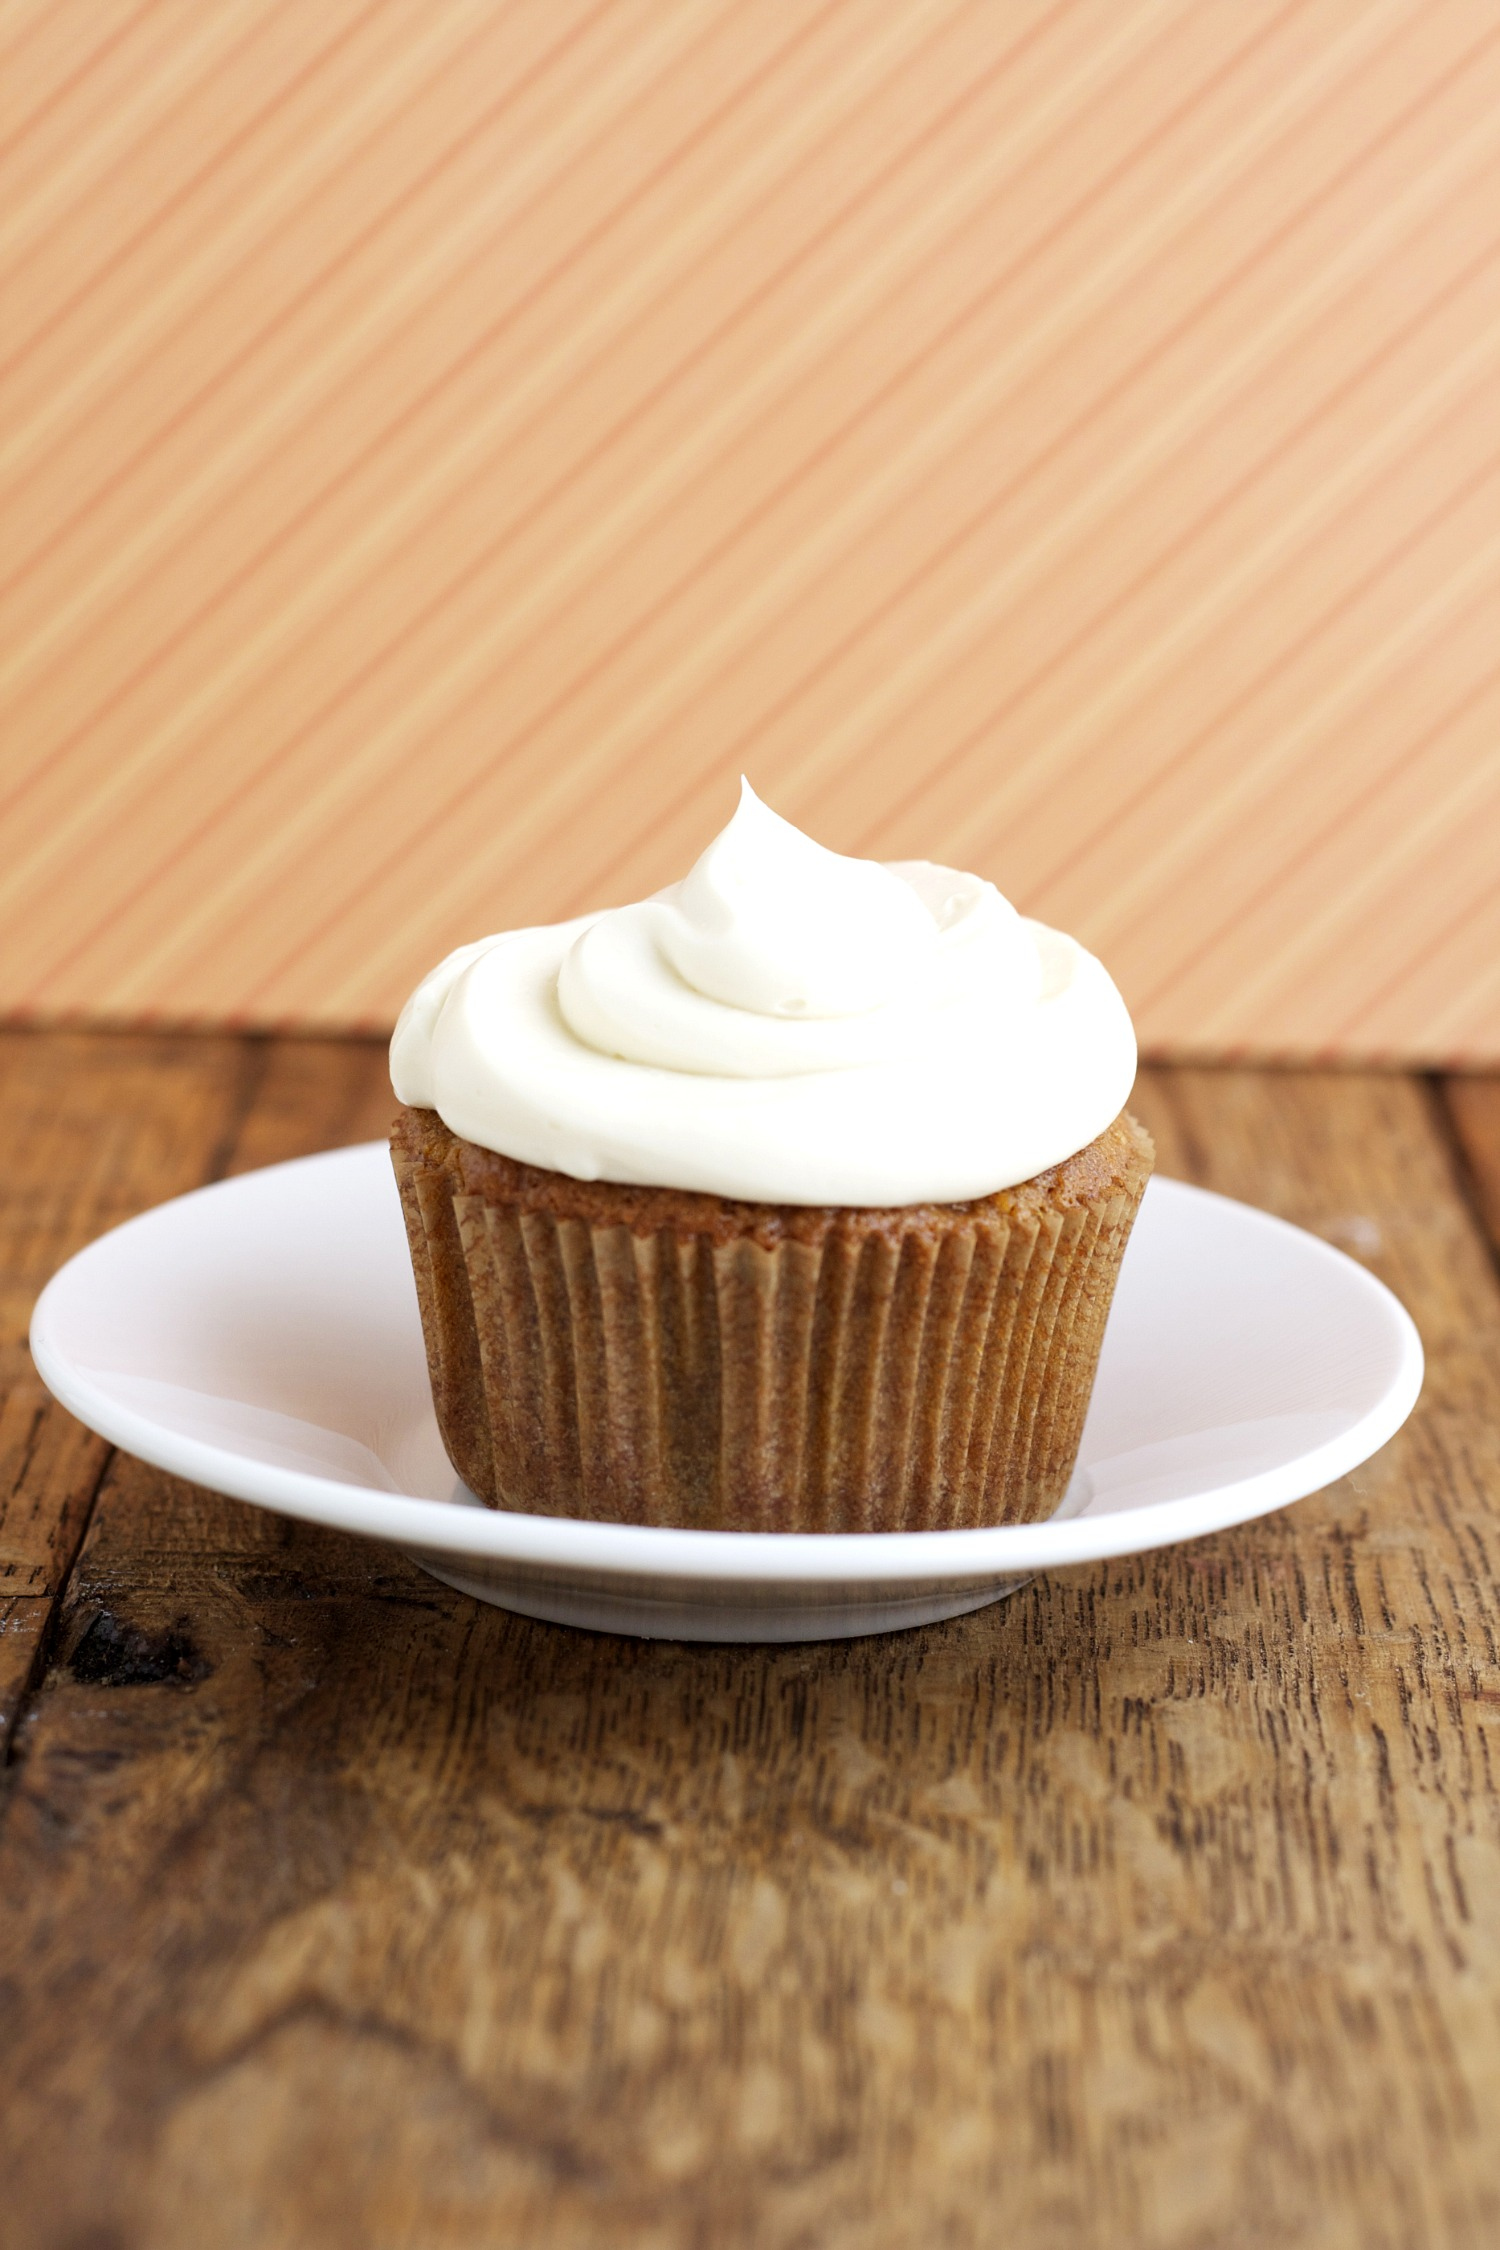 Gluten Free Carrot Cake Cupcakes with Maple Cream Cheese Frosting